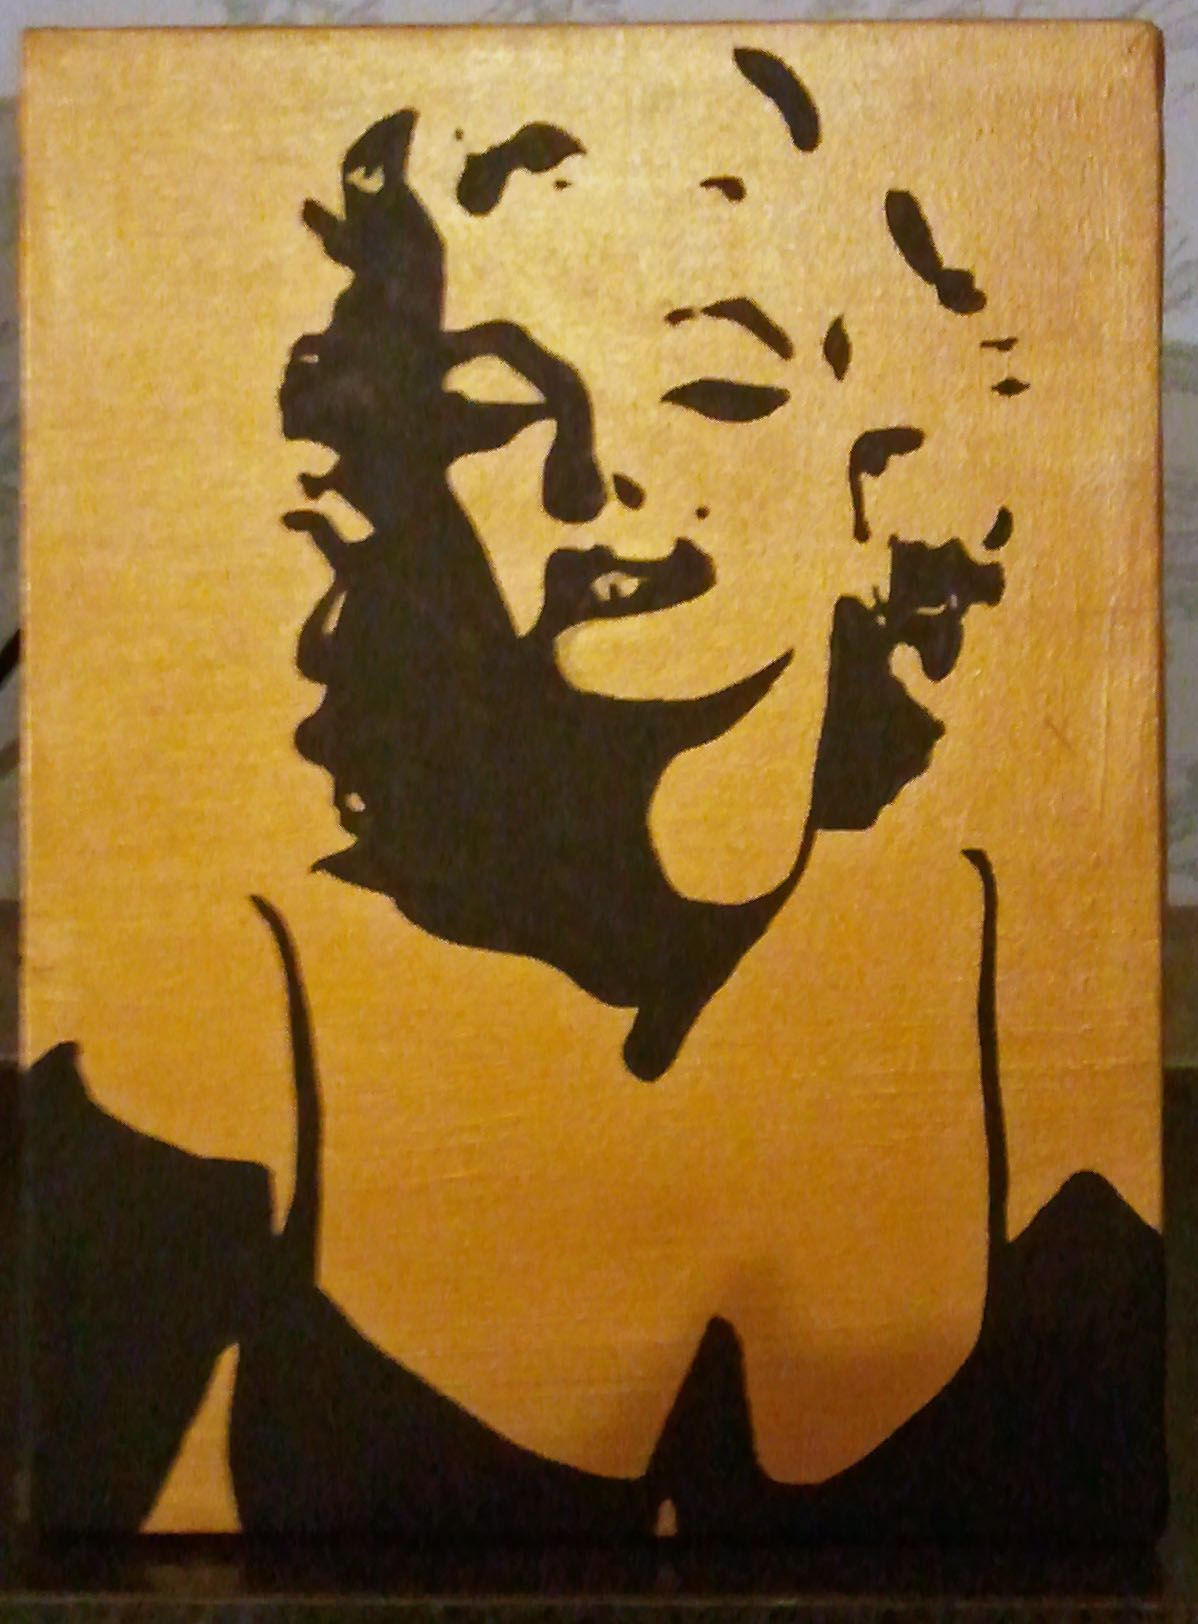 Marilyn Monroe silhouette on metallic gold background ศิลปะ